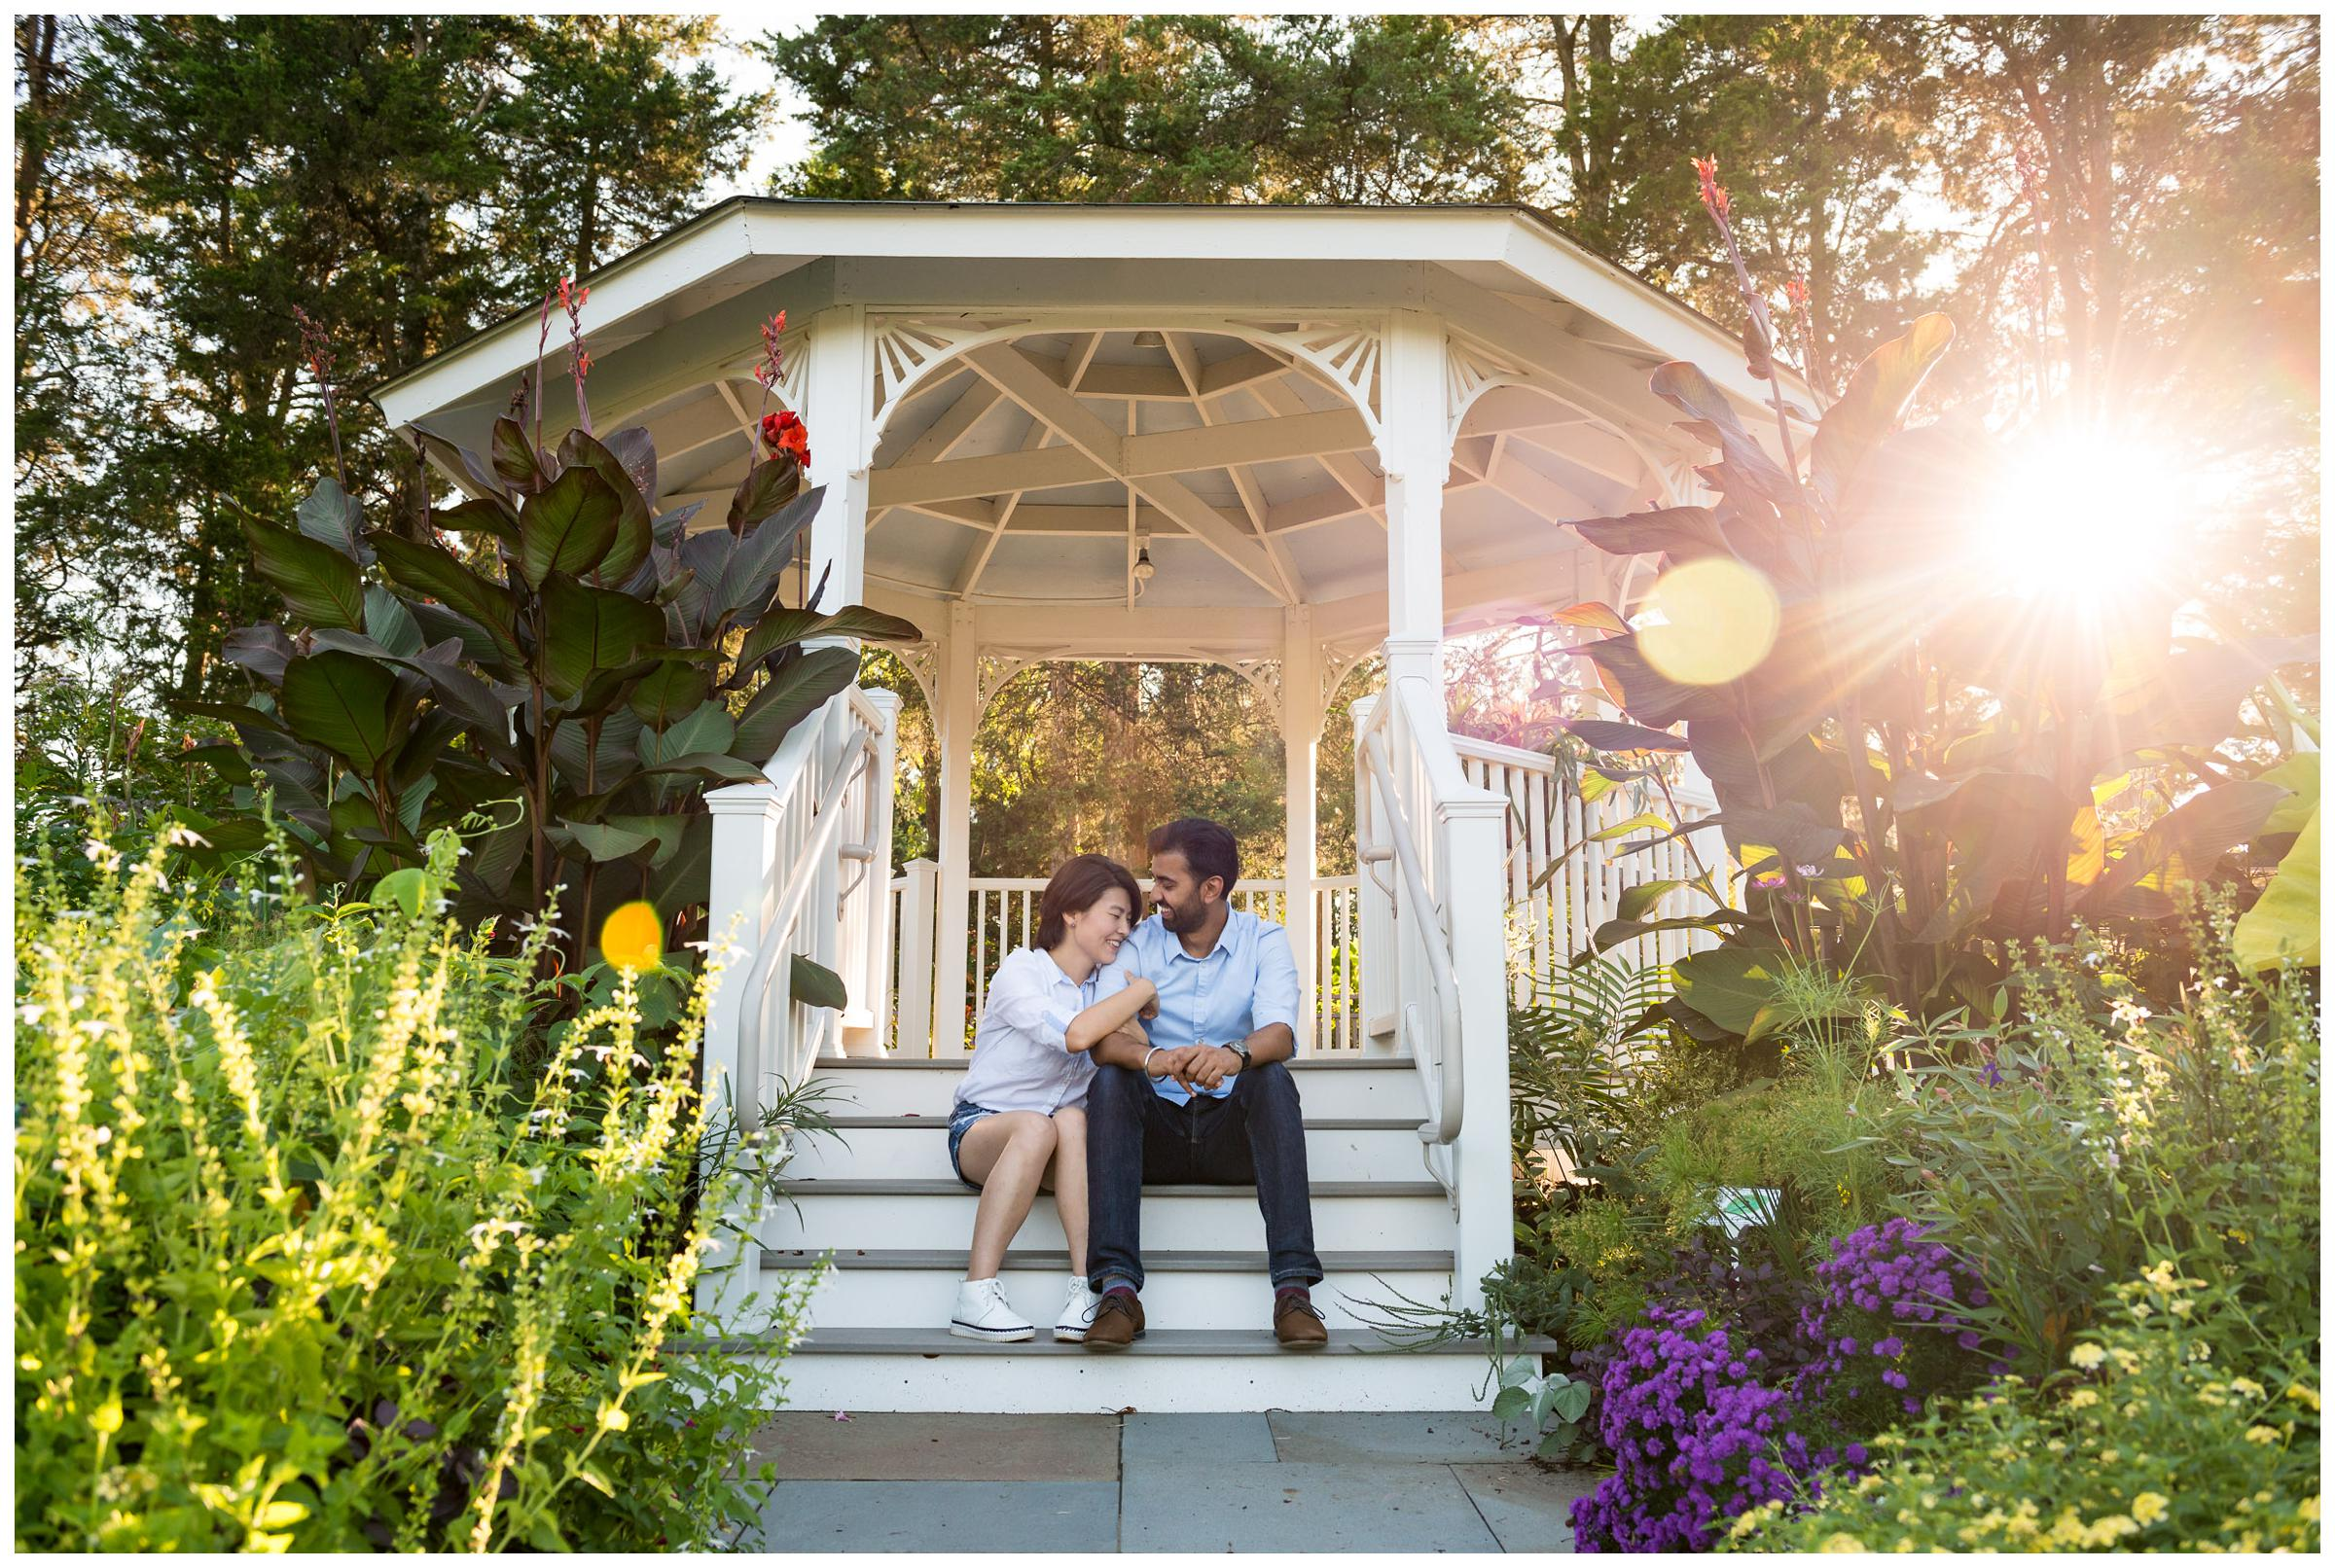 engaged couple in gazebo with sun flare